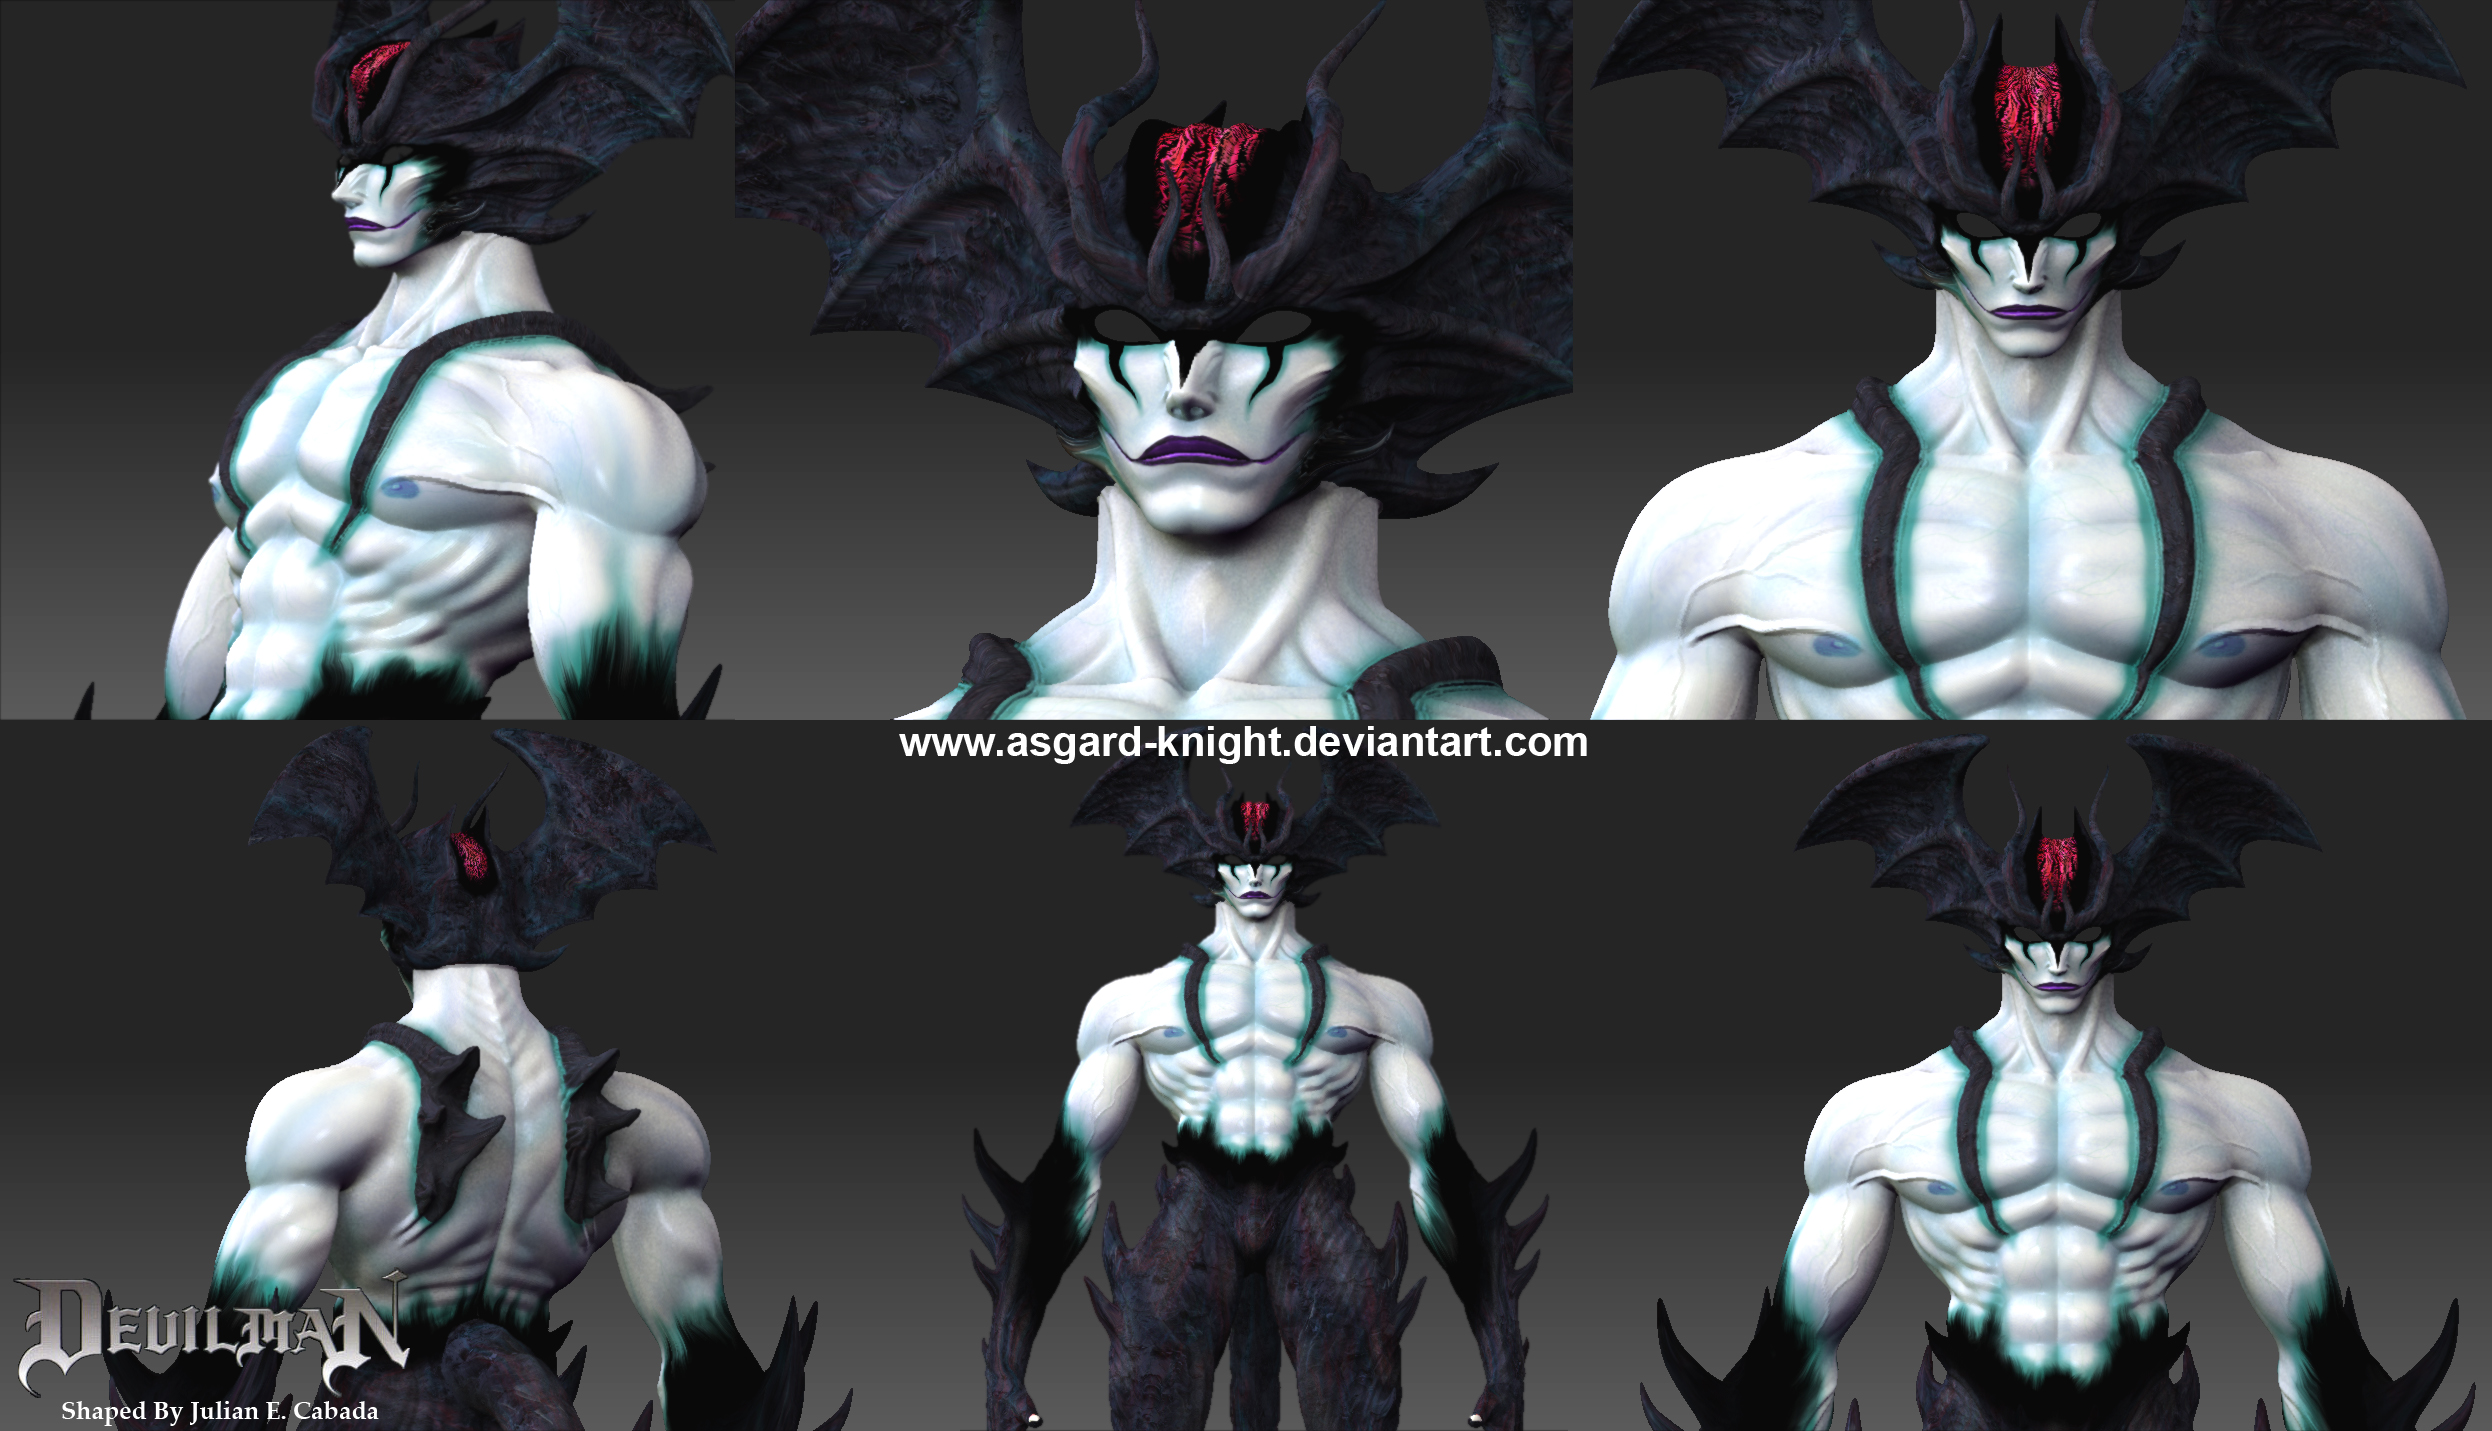 Anime Characters Zbrush : Neo devilman on zbrush by asgard knight deviantart